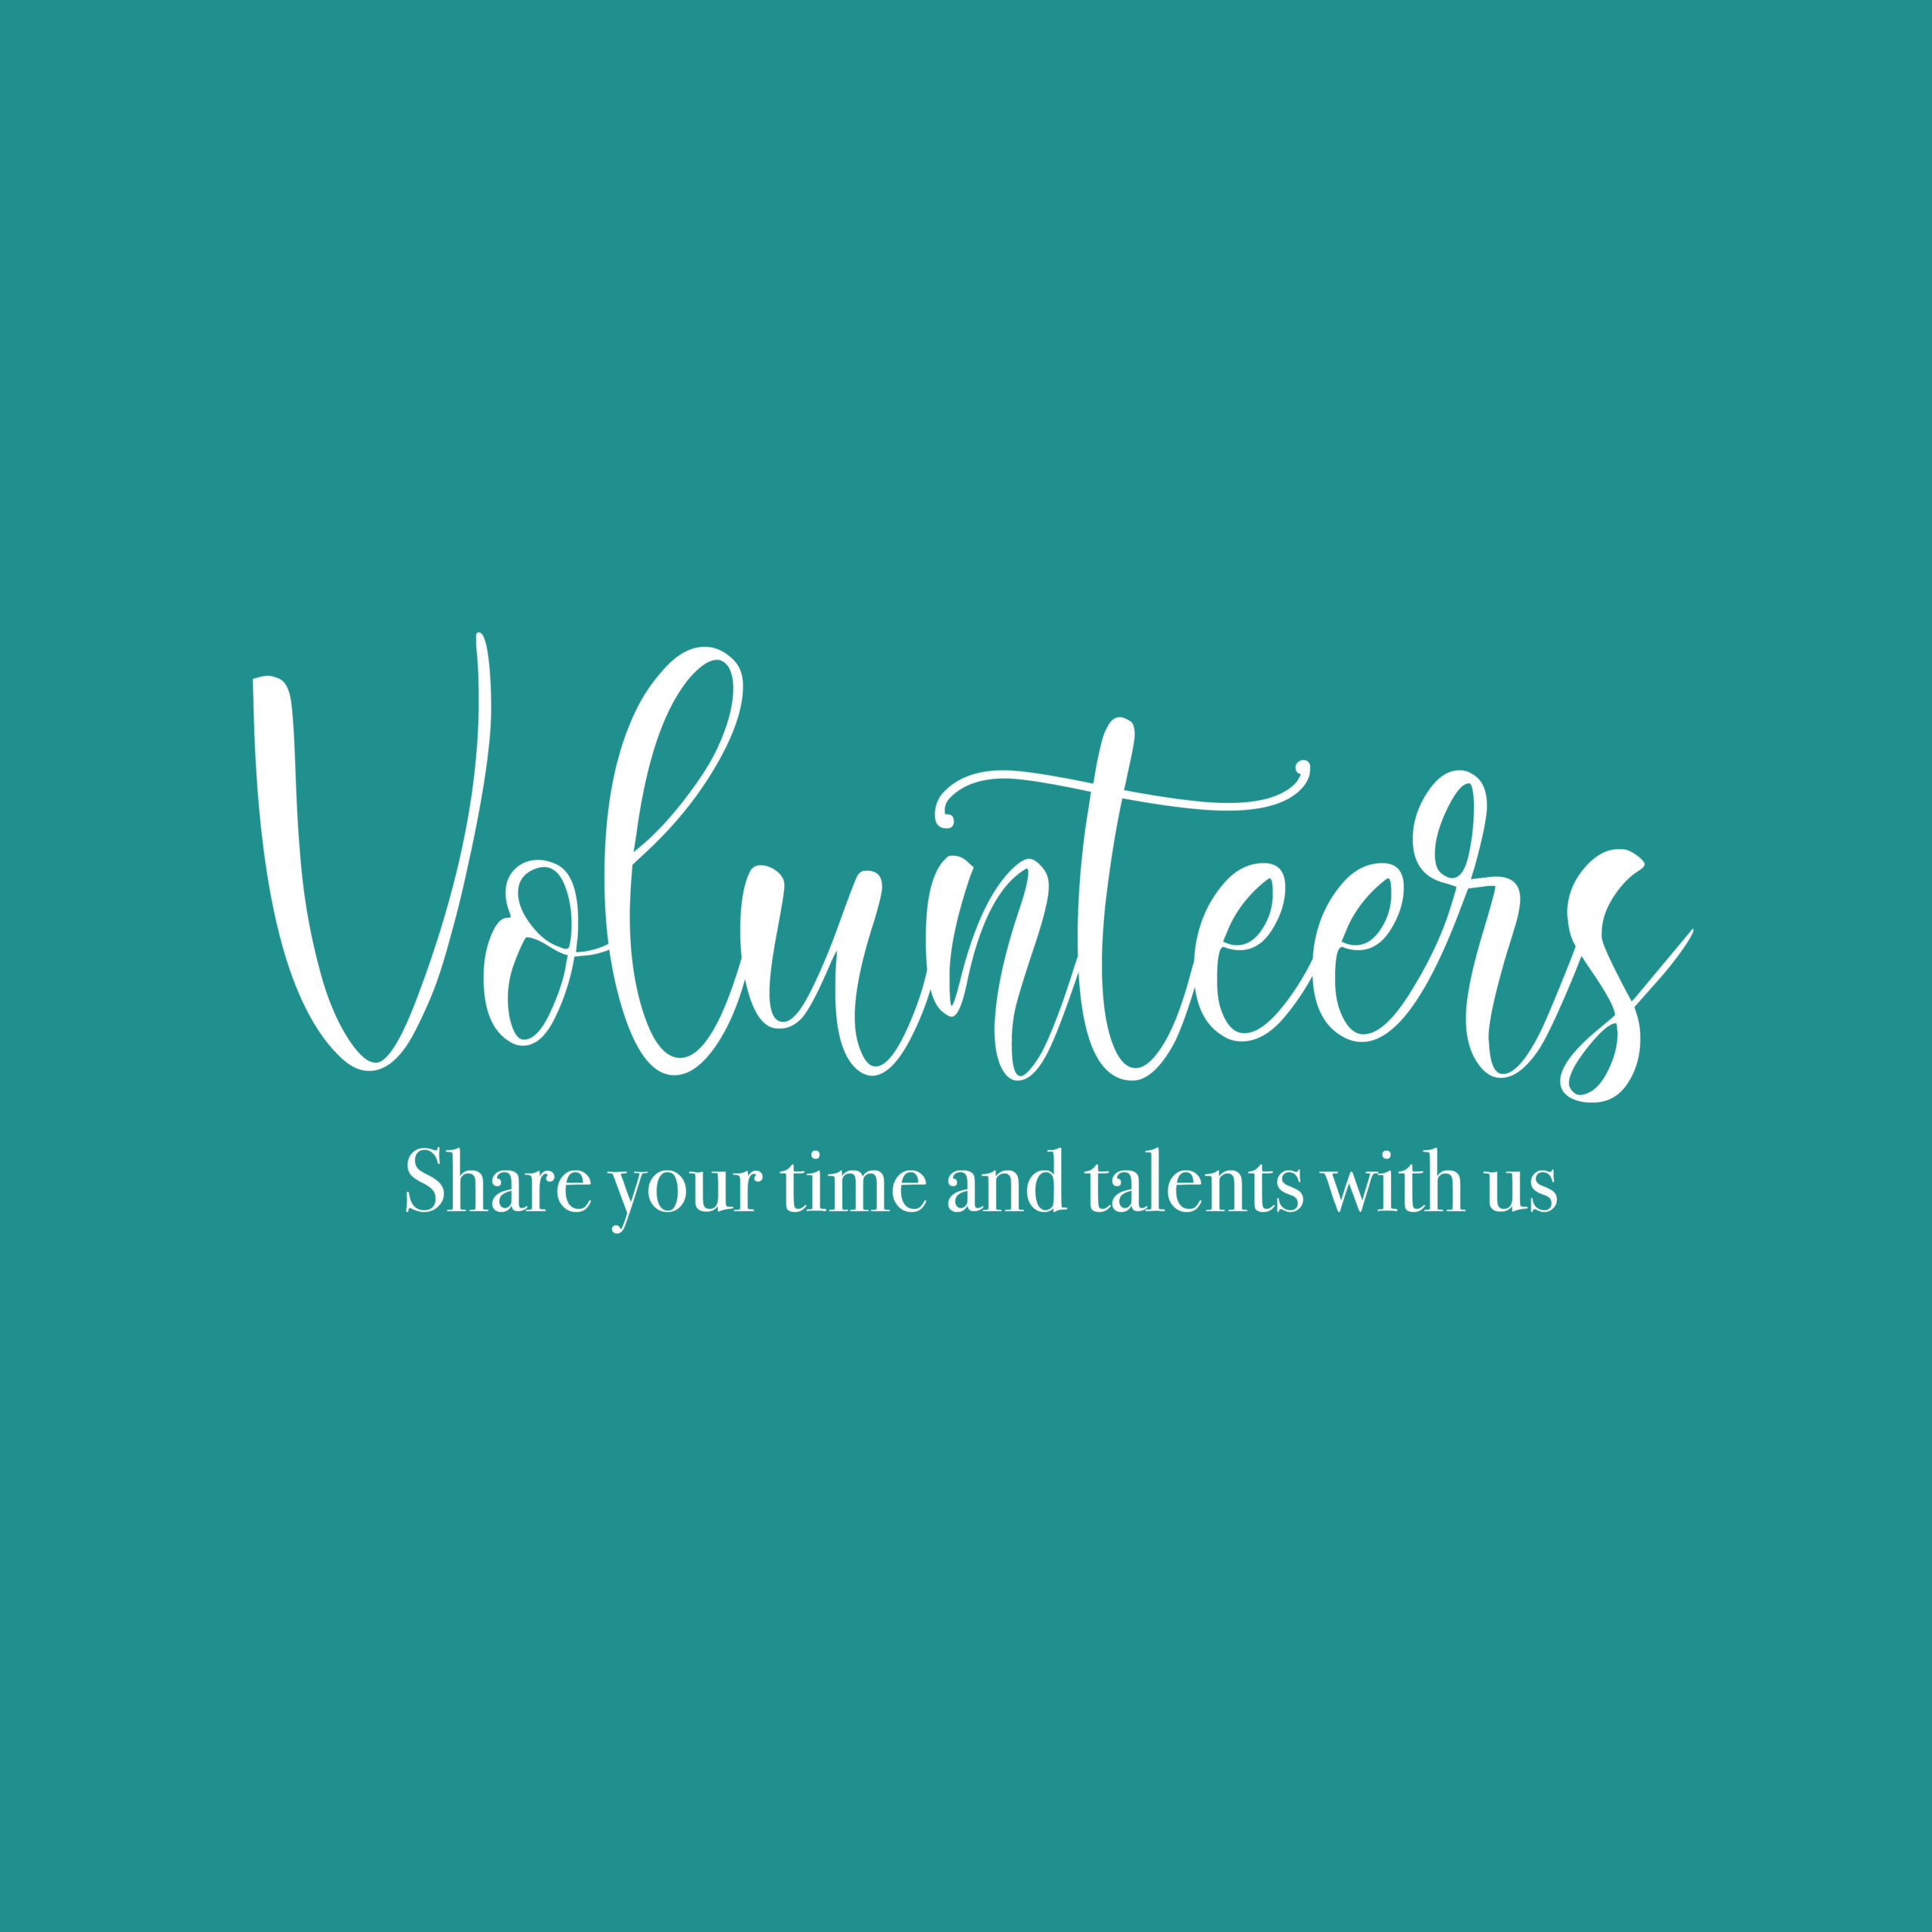 volunteer your time and talents with us